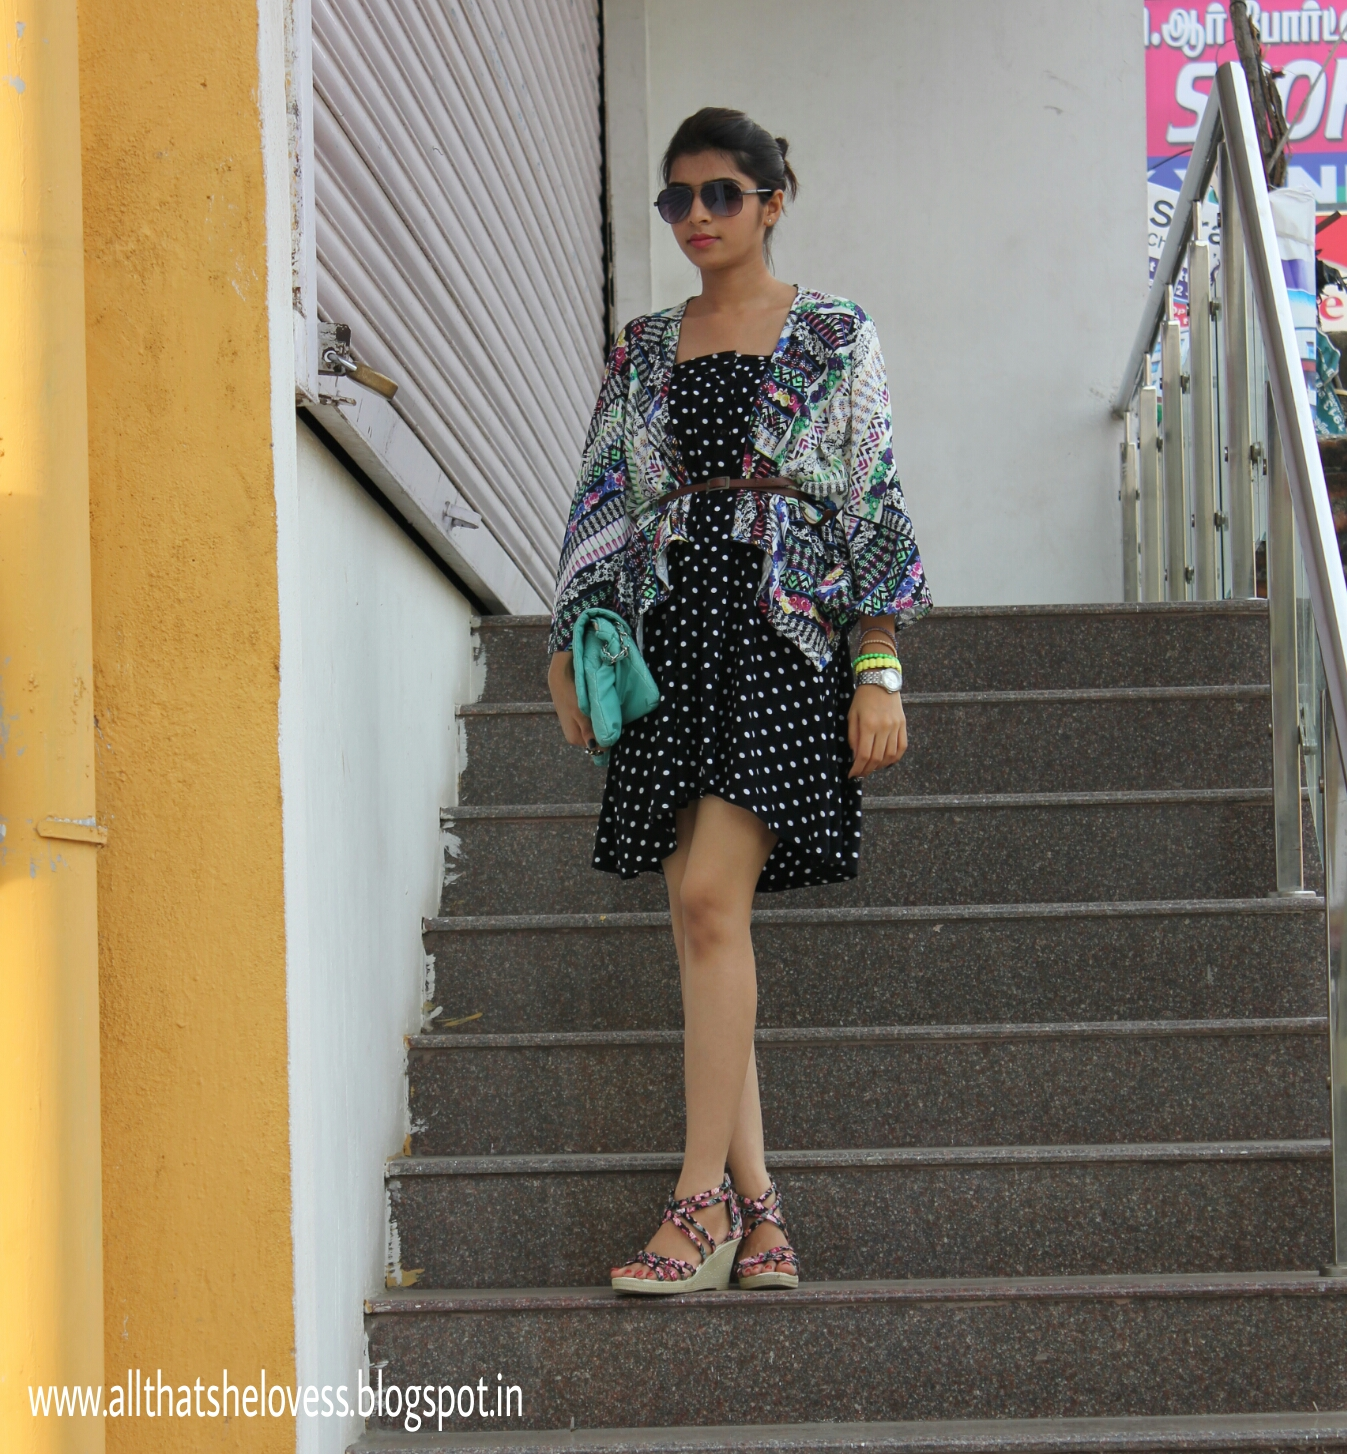 Skirt 599 Inr Max Kimono 699 Belt Came With A Top From 2 Years Ago Footwear Hill Road Mumbai Oversized Clutch Jodhpur